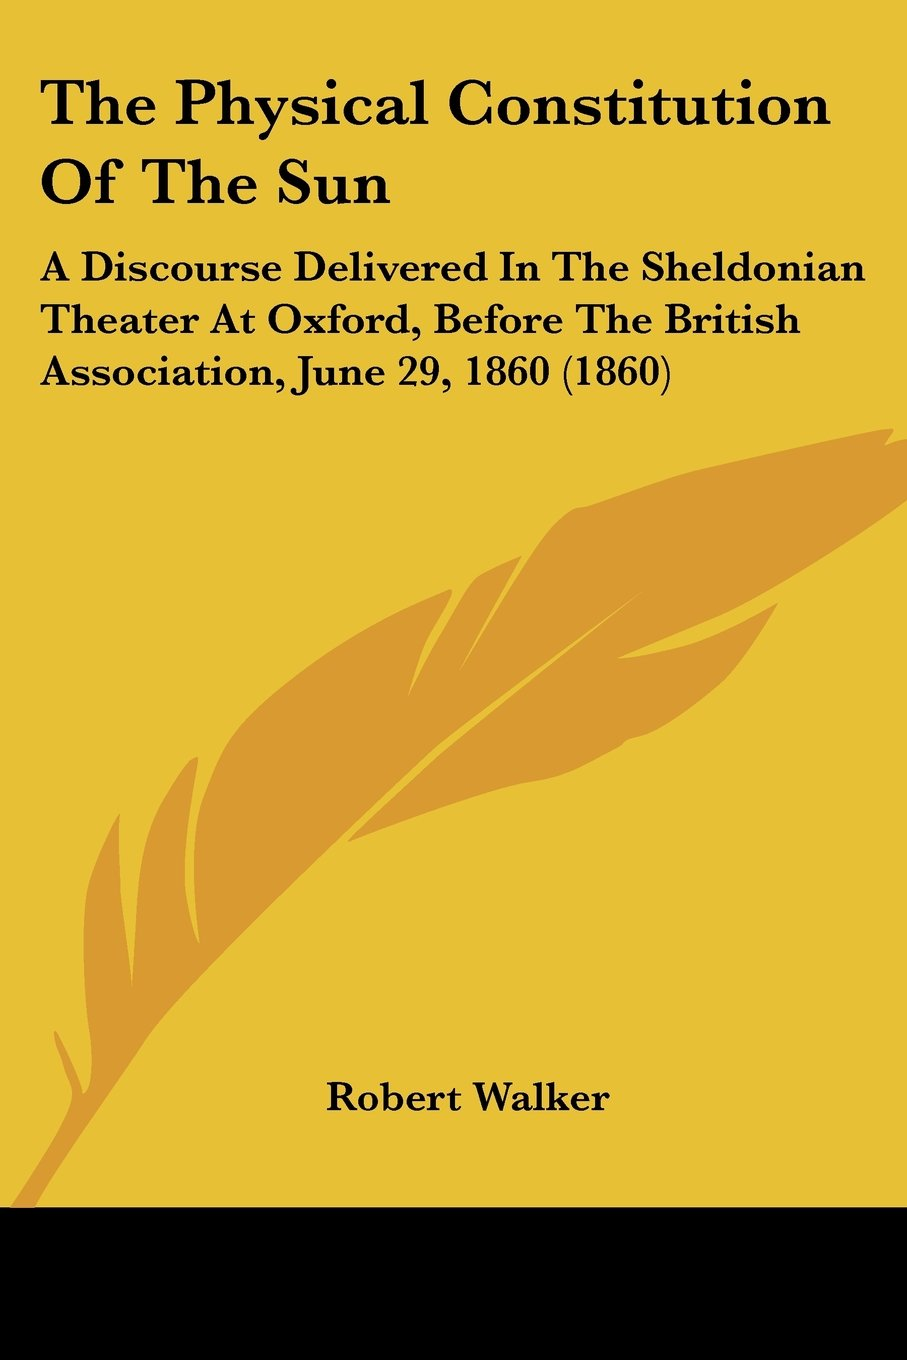 Download The Physical Constitution Of The Sun: A Discourse Delivered In The Sheldonian Theater At Oxford, Before The British Association, June 29, 1860 (1860) pdf epub